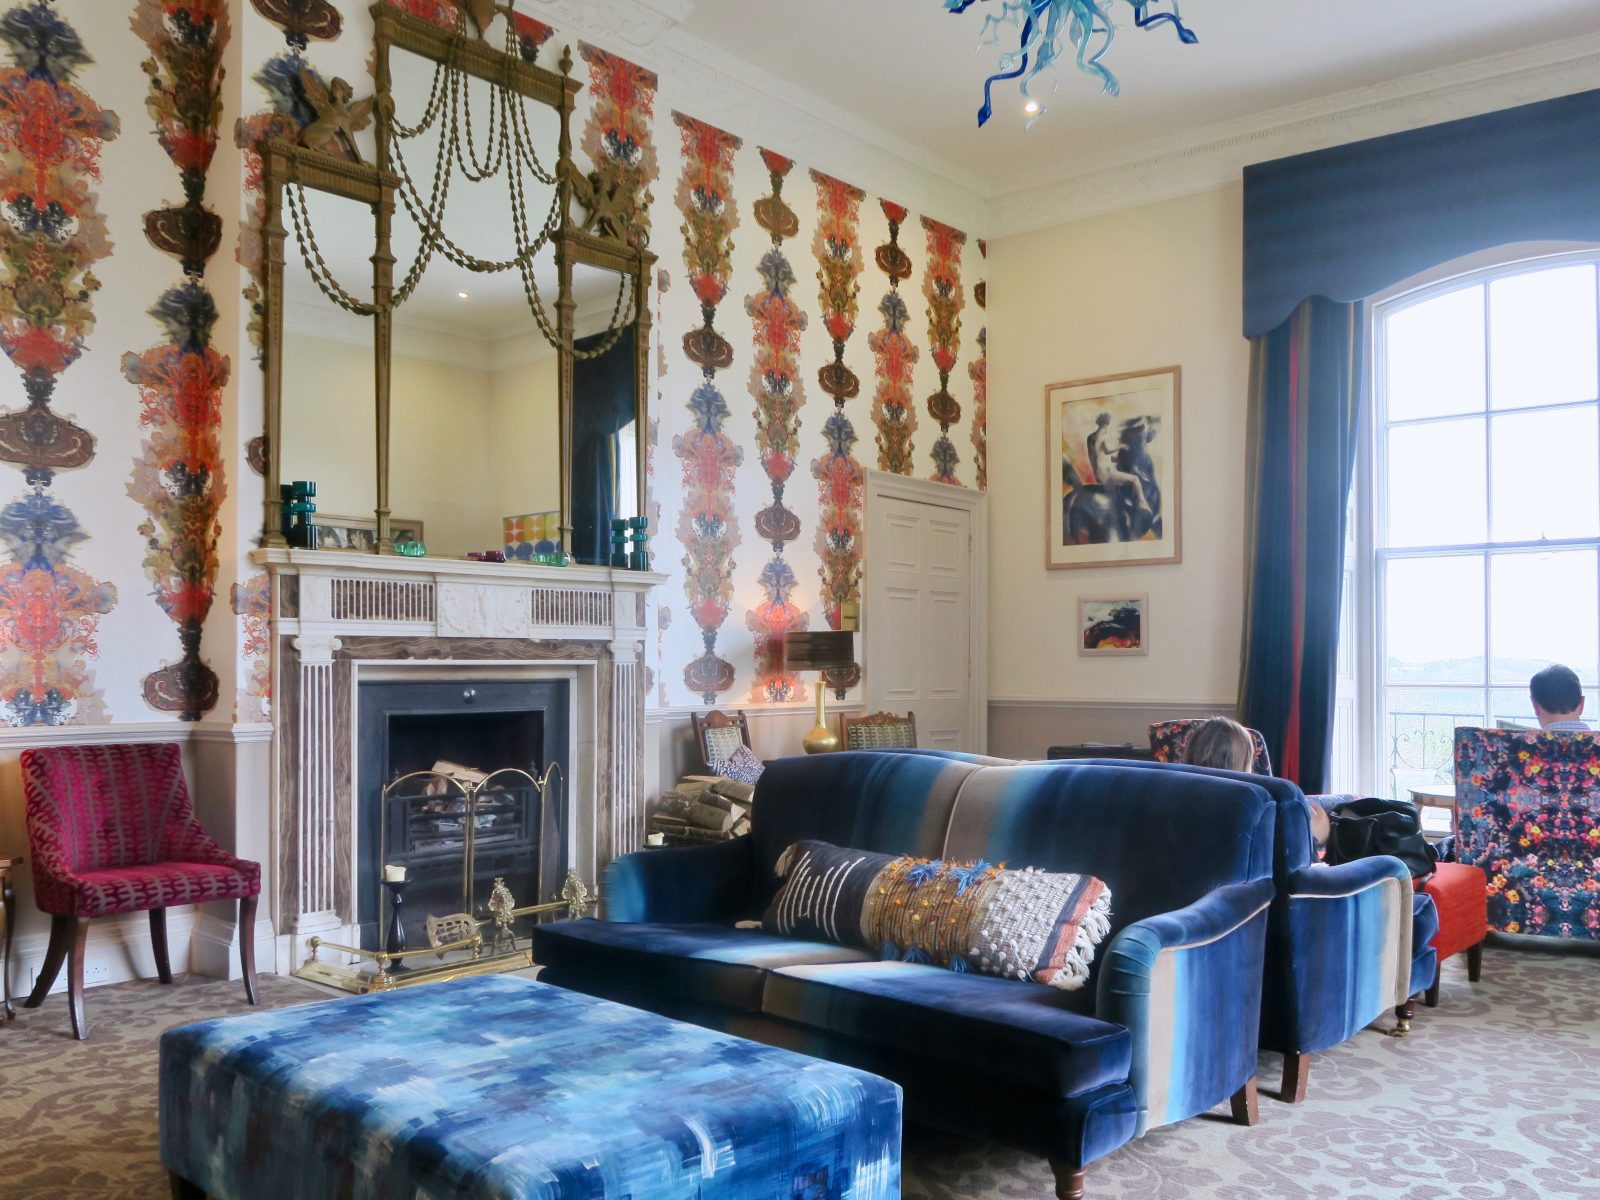 Combe Grove Hotel Bath review